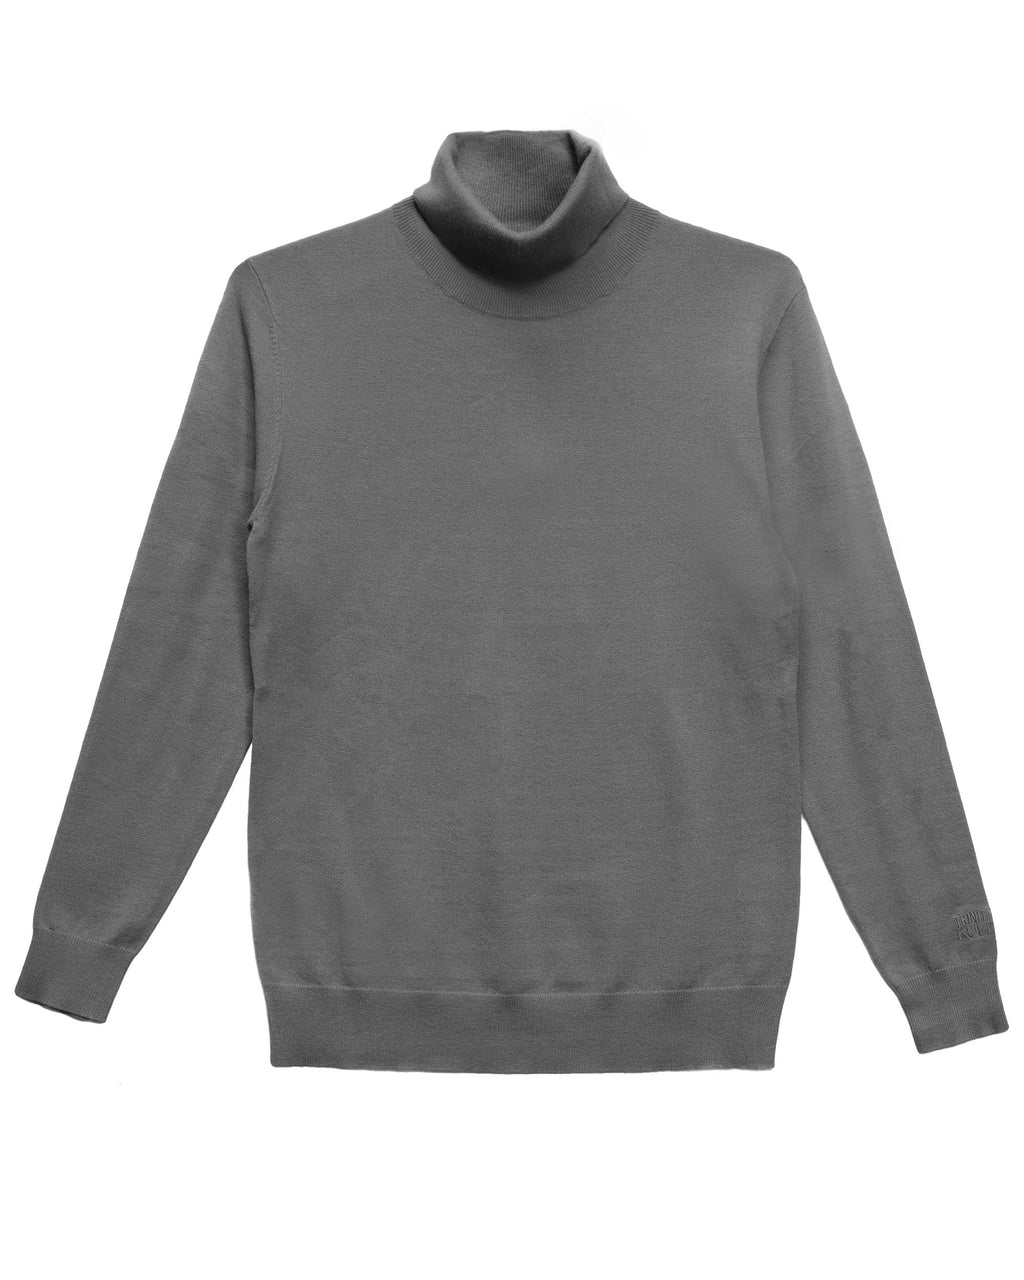 Trinity Kays Kulture Logo Turtleneck Sweater - Charcoal